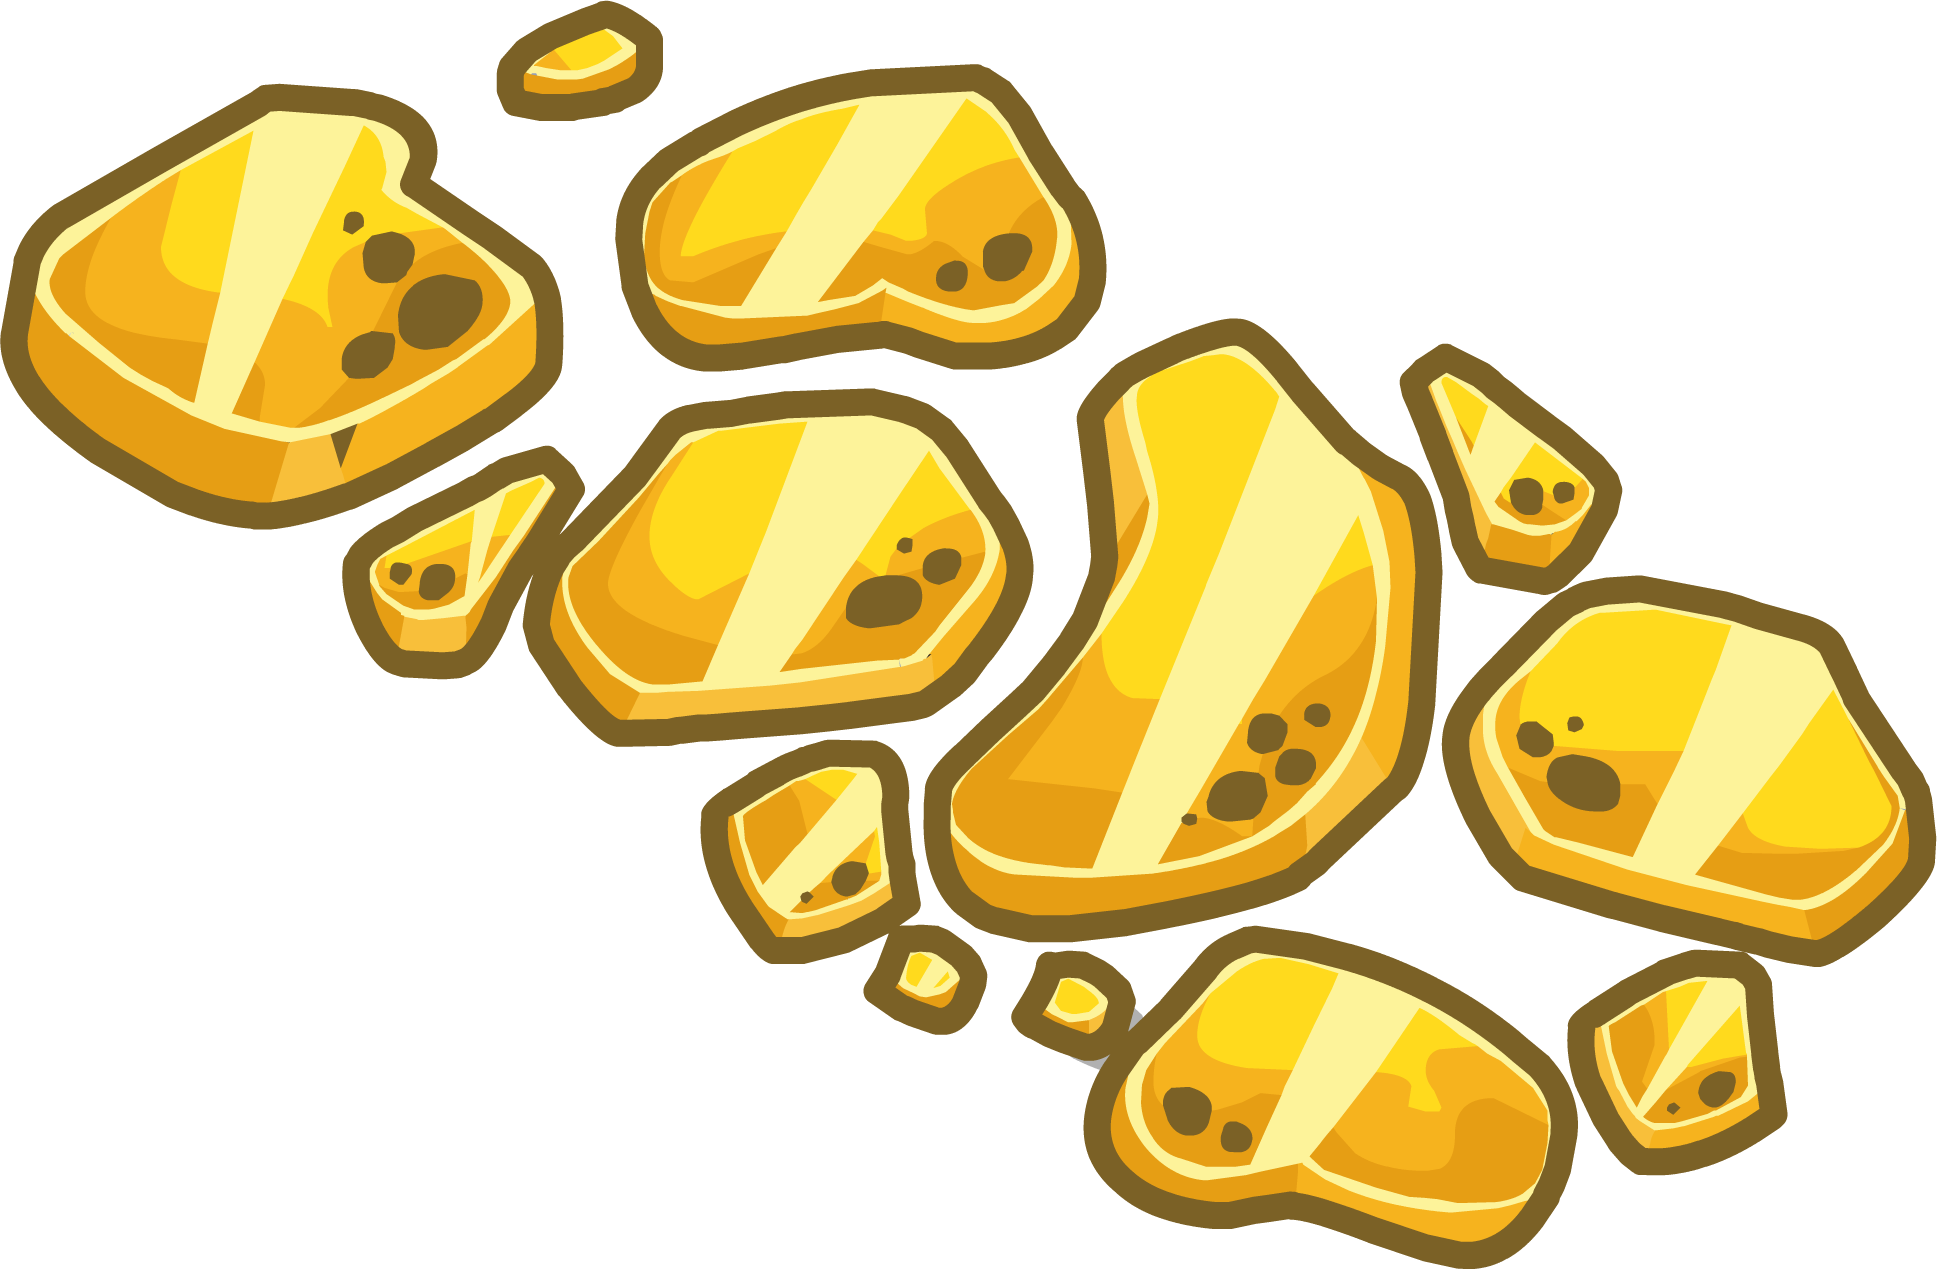 Gold walkway club penguin. Pathway clipart stone path